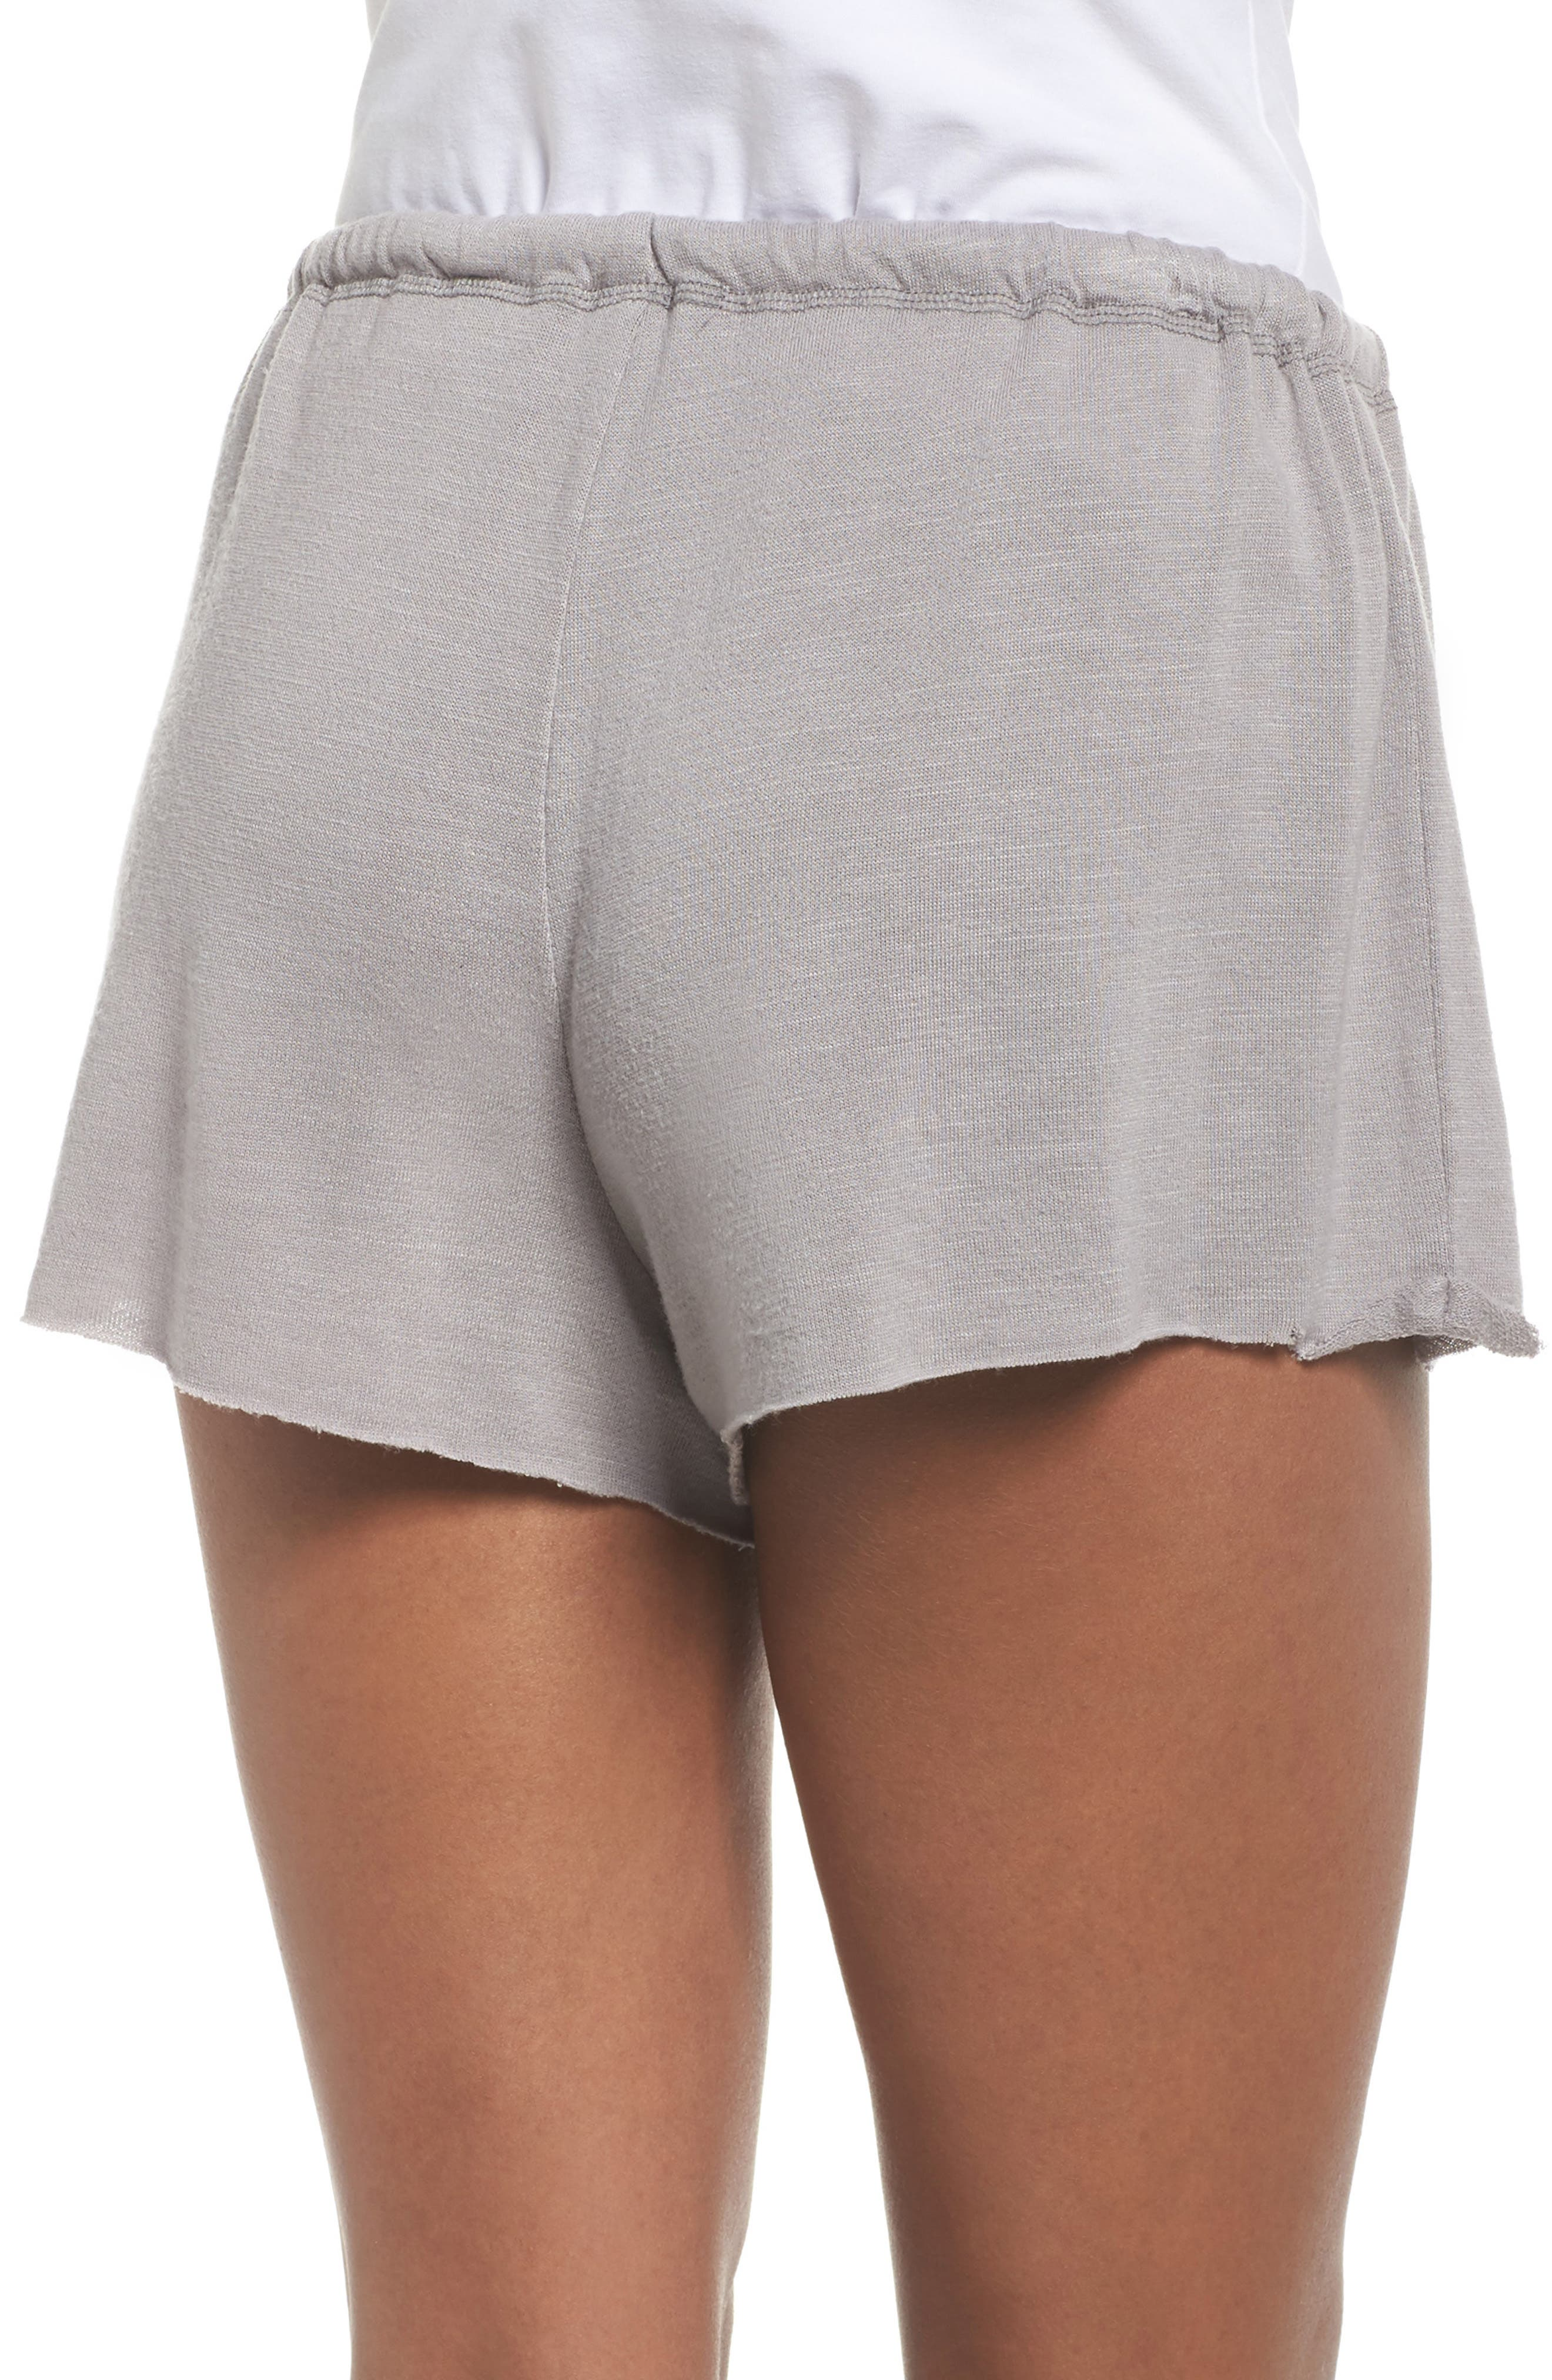 French Terry Lounge Shorts,                             Alternate thumbnail 3, color,